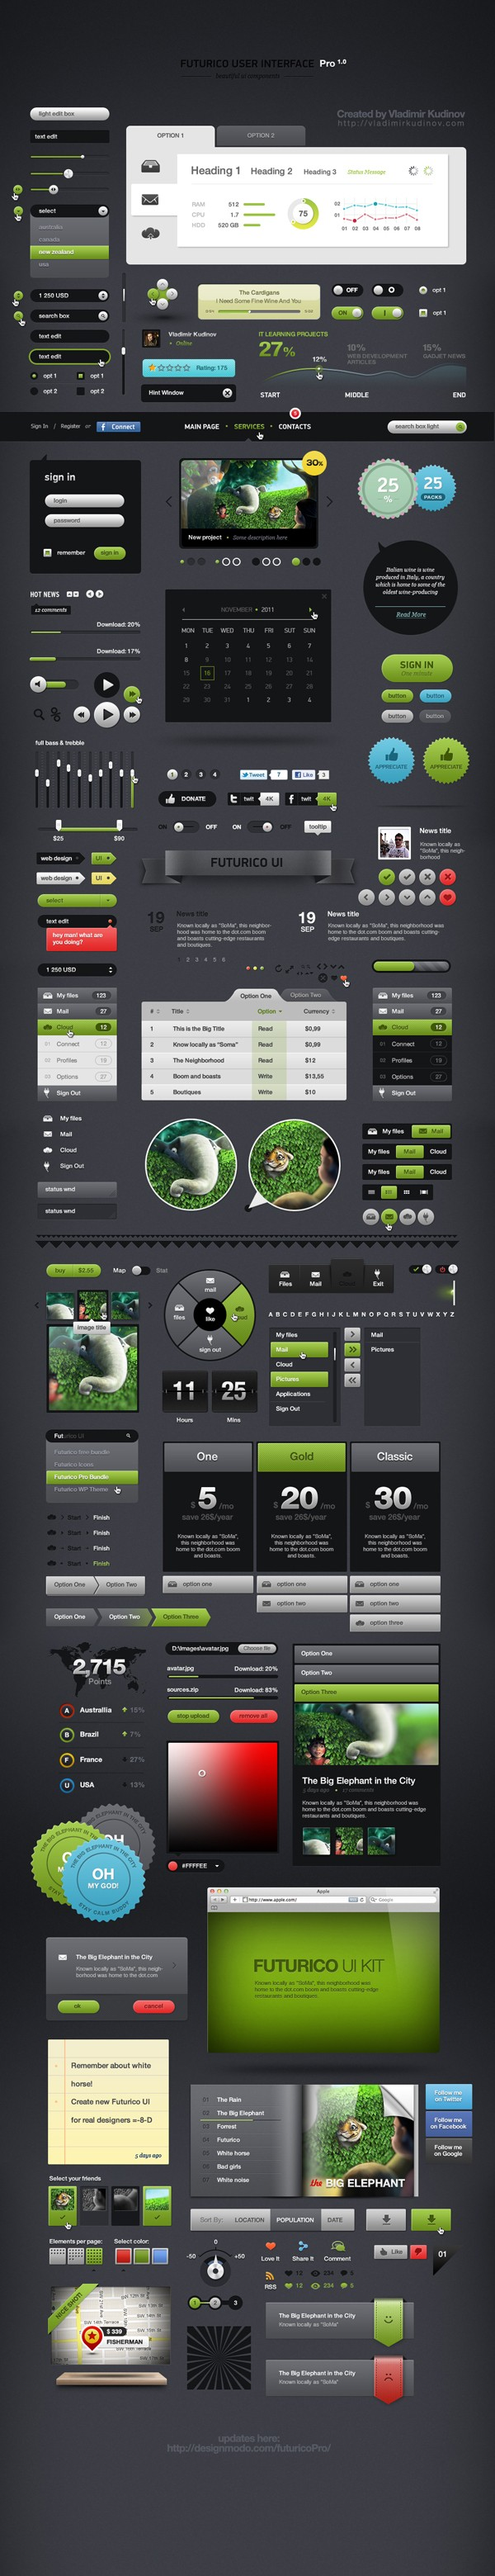 futurico pro ui elements psd pack